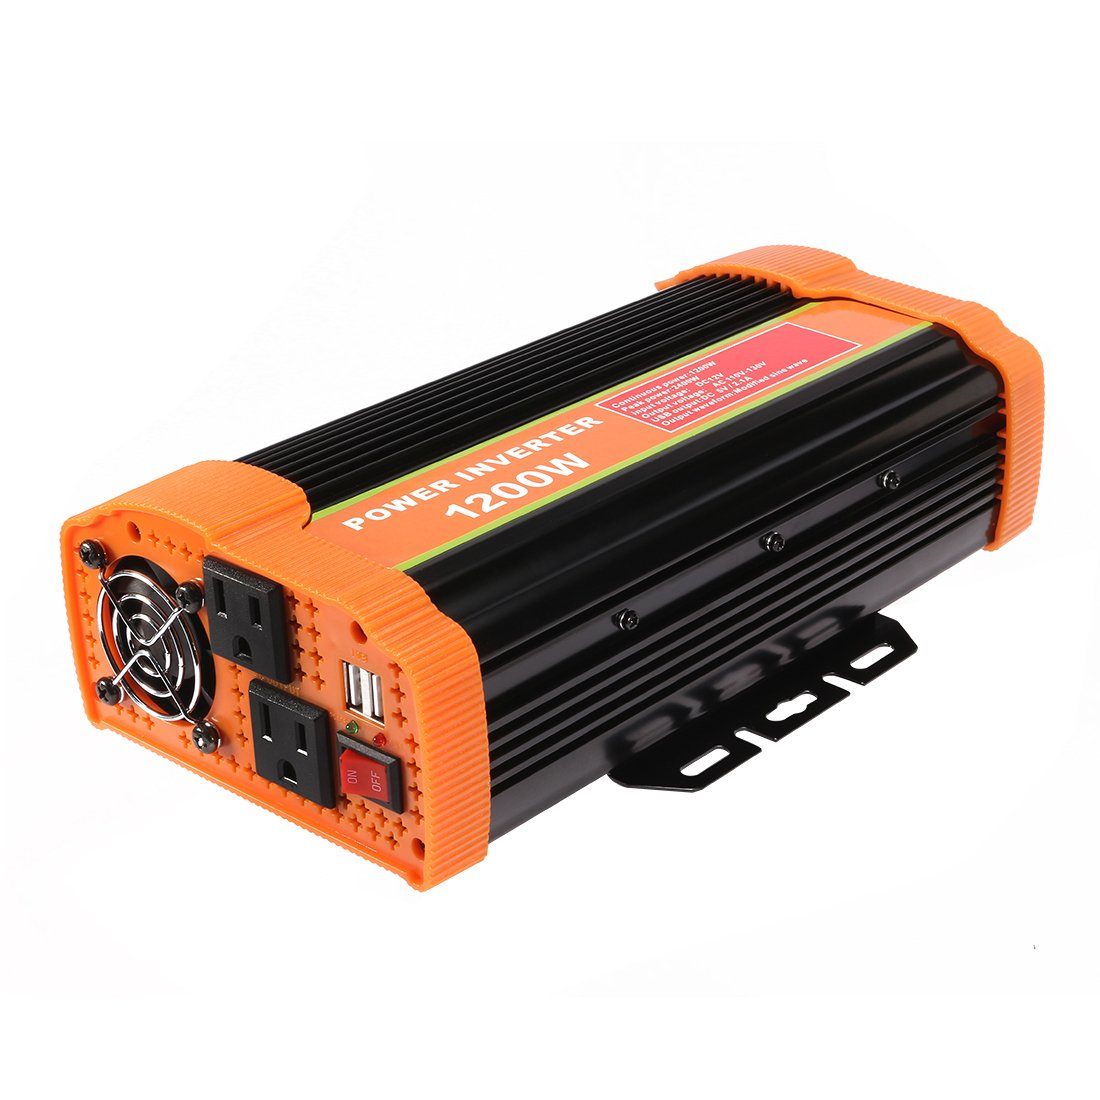 uxcell 1200W Car Power Inverter DC 12V to 110V AC Inverter w 2.1A Dual USB Car Charger Charging Ports